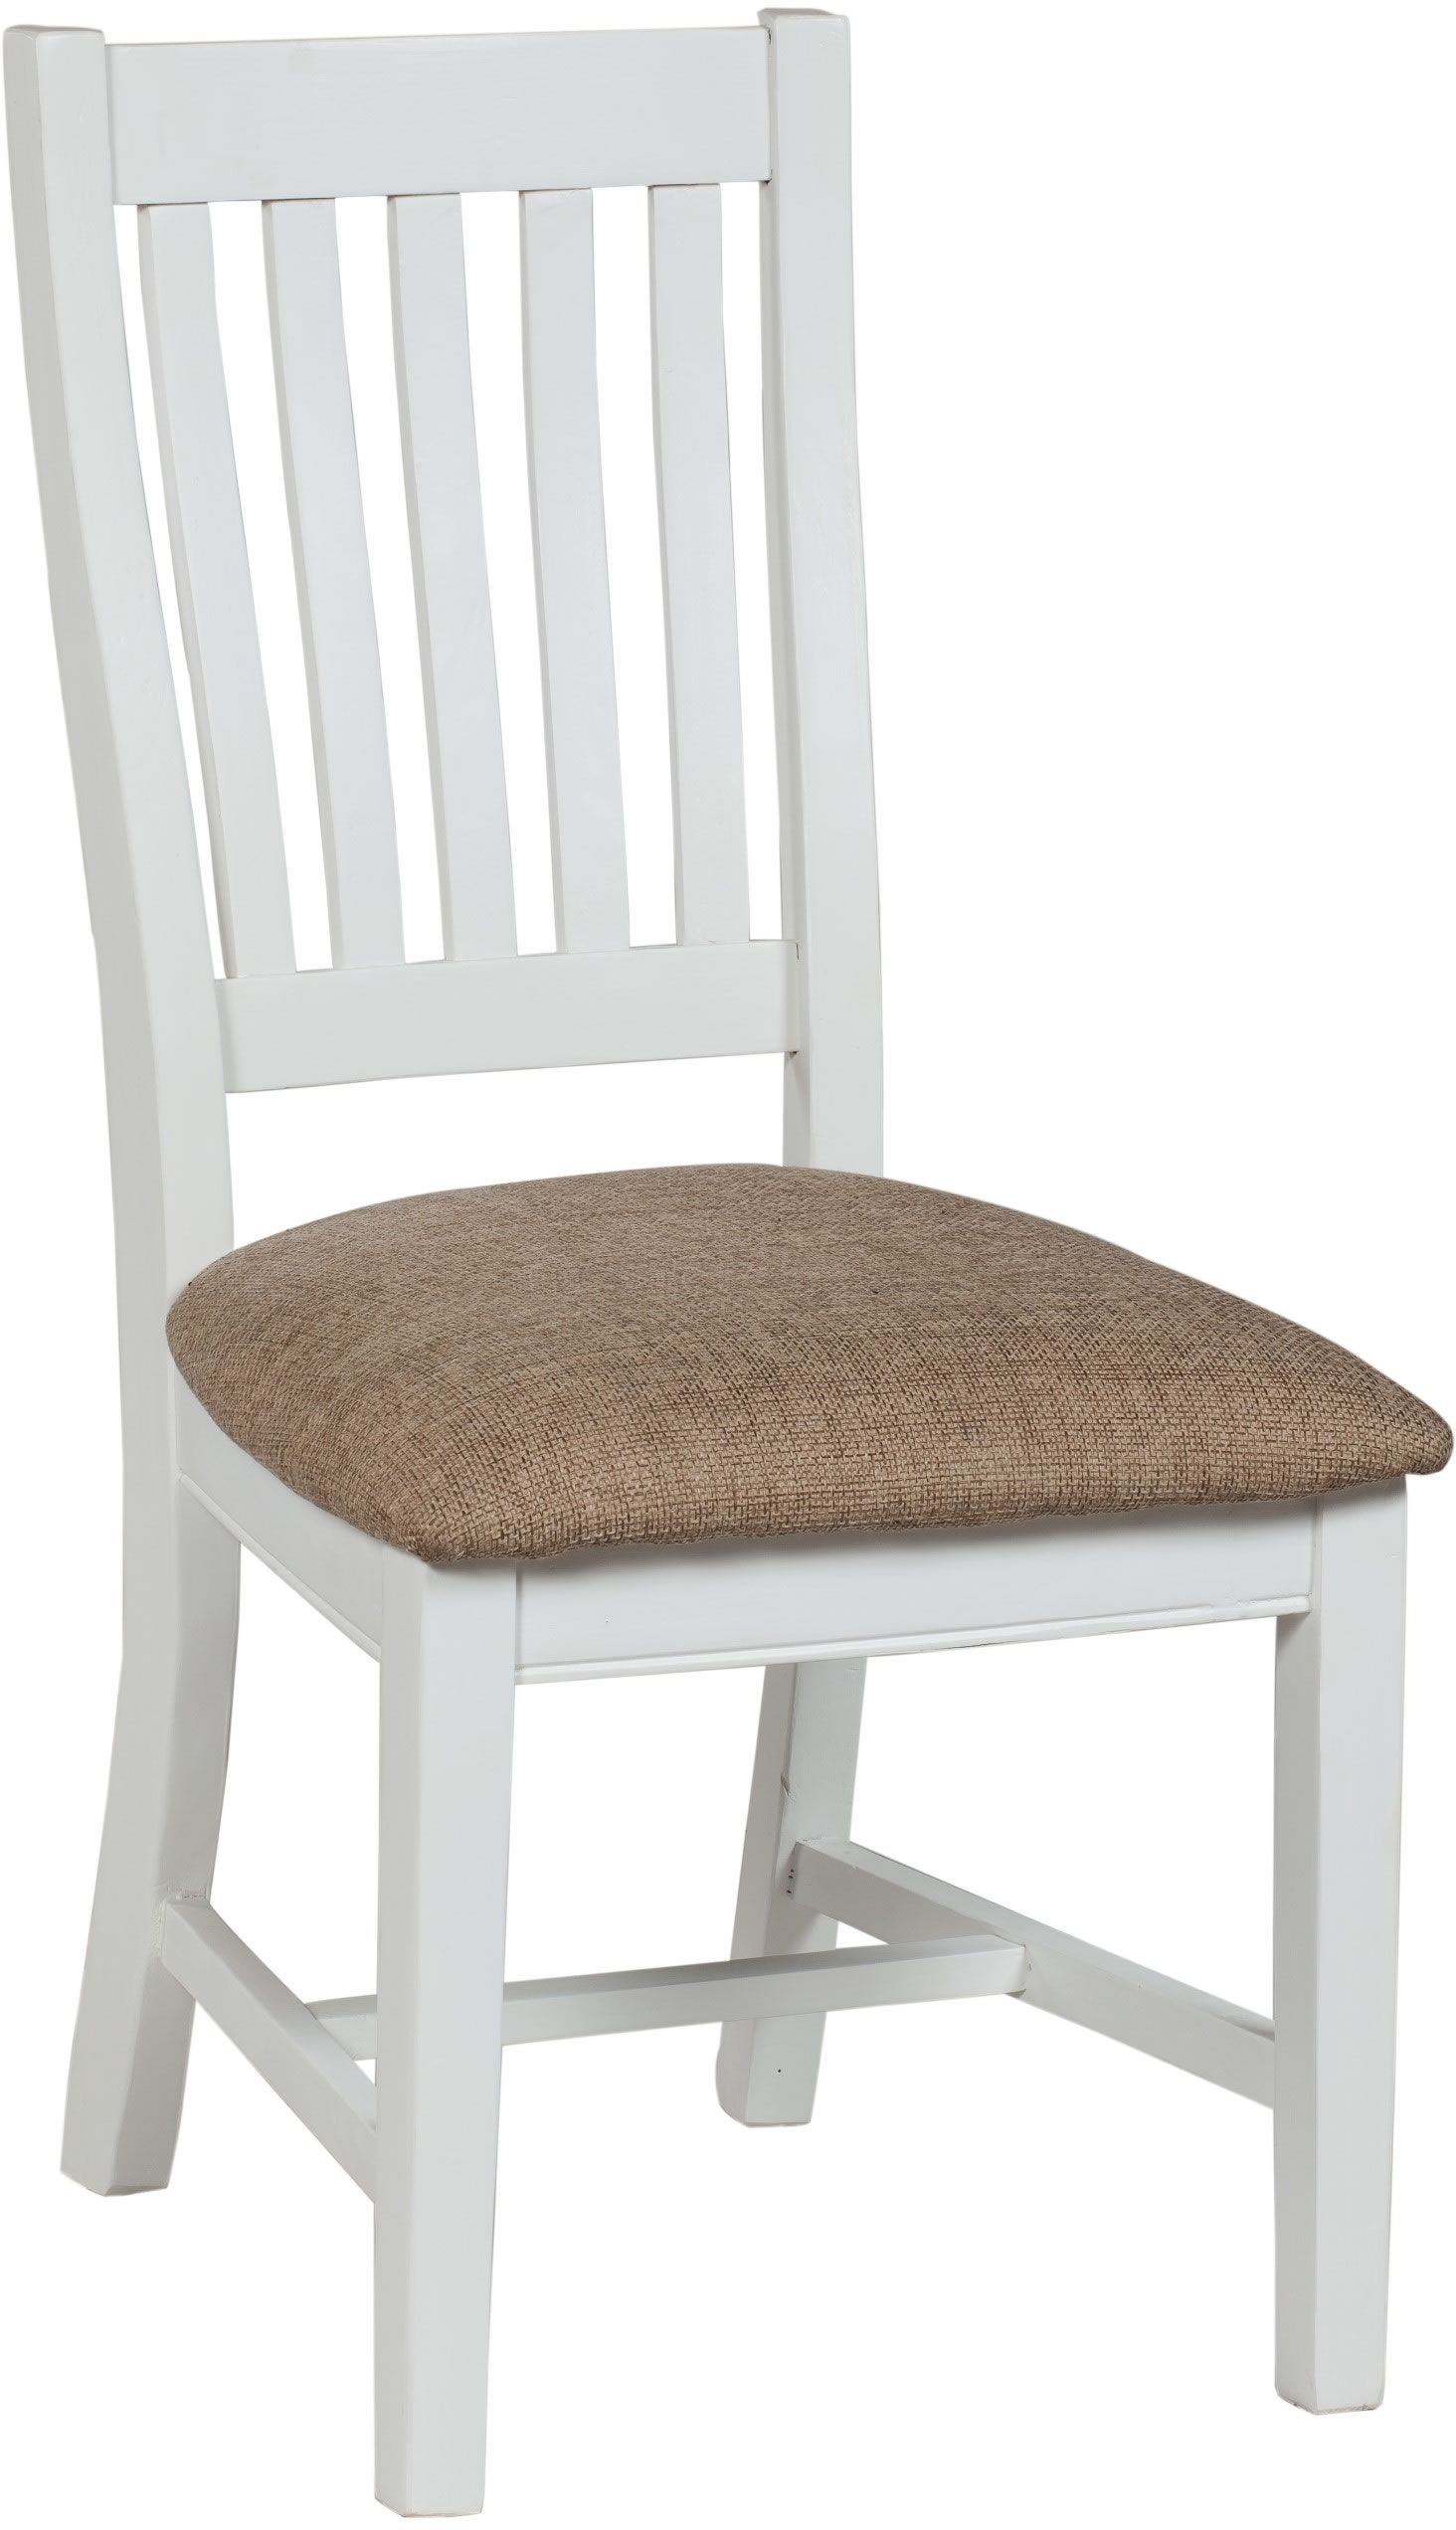 cheap pine dining chairs chair with lumbar support for office cdi furniture ontario reclaimed slat